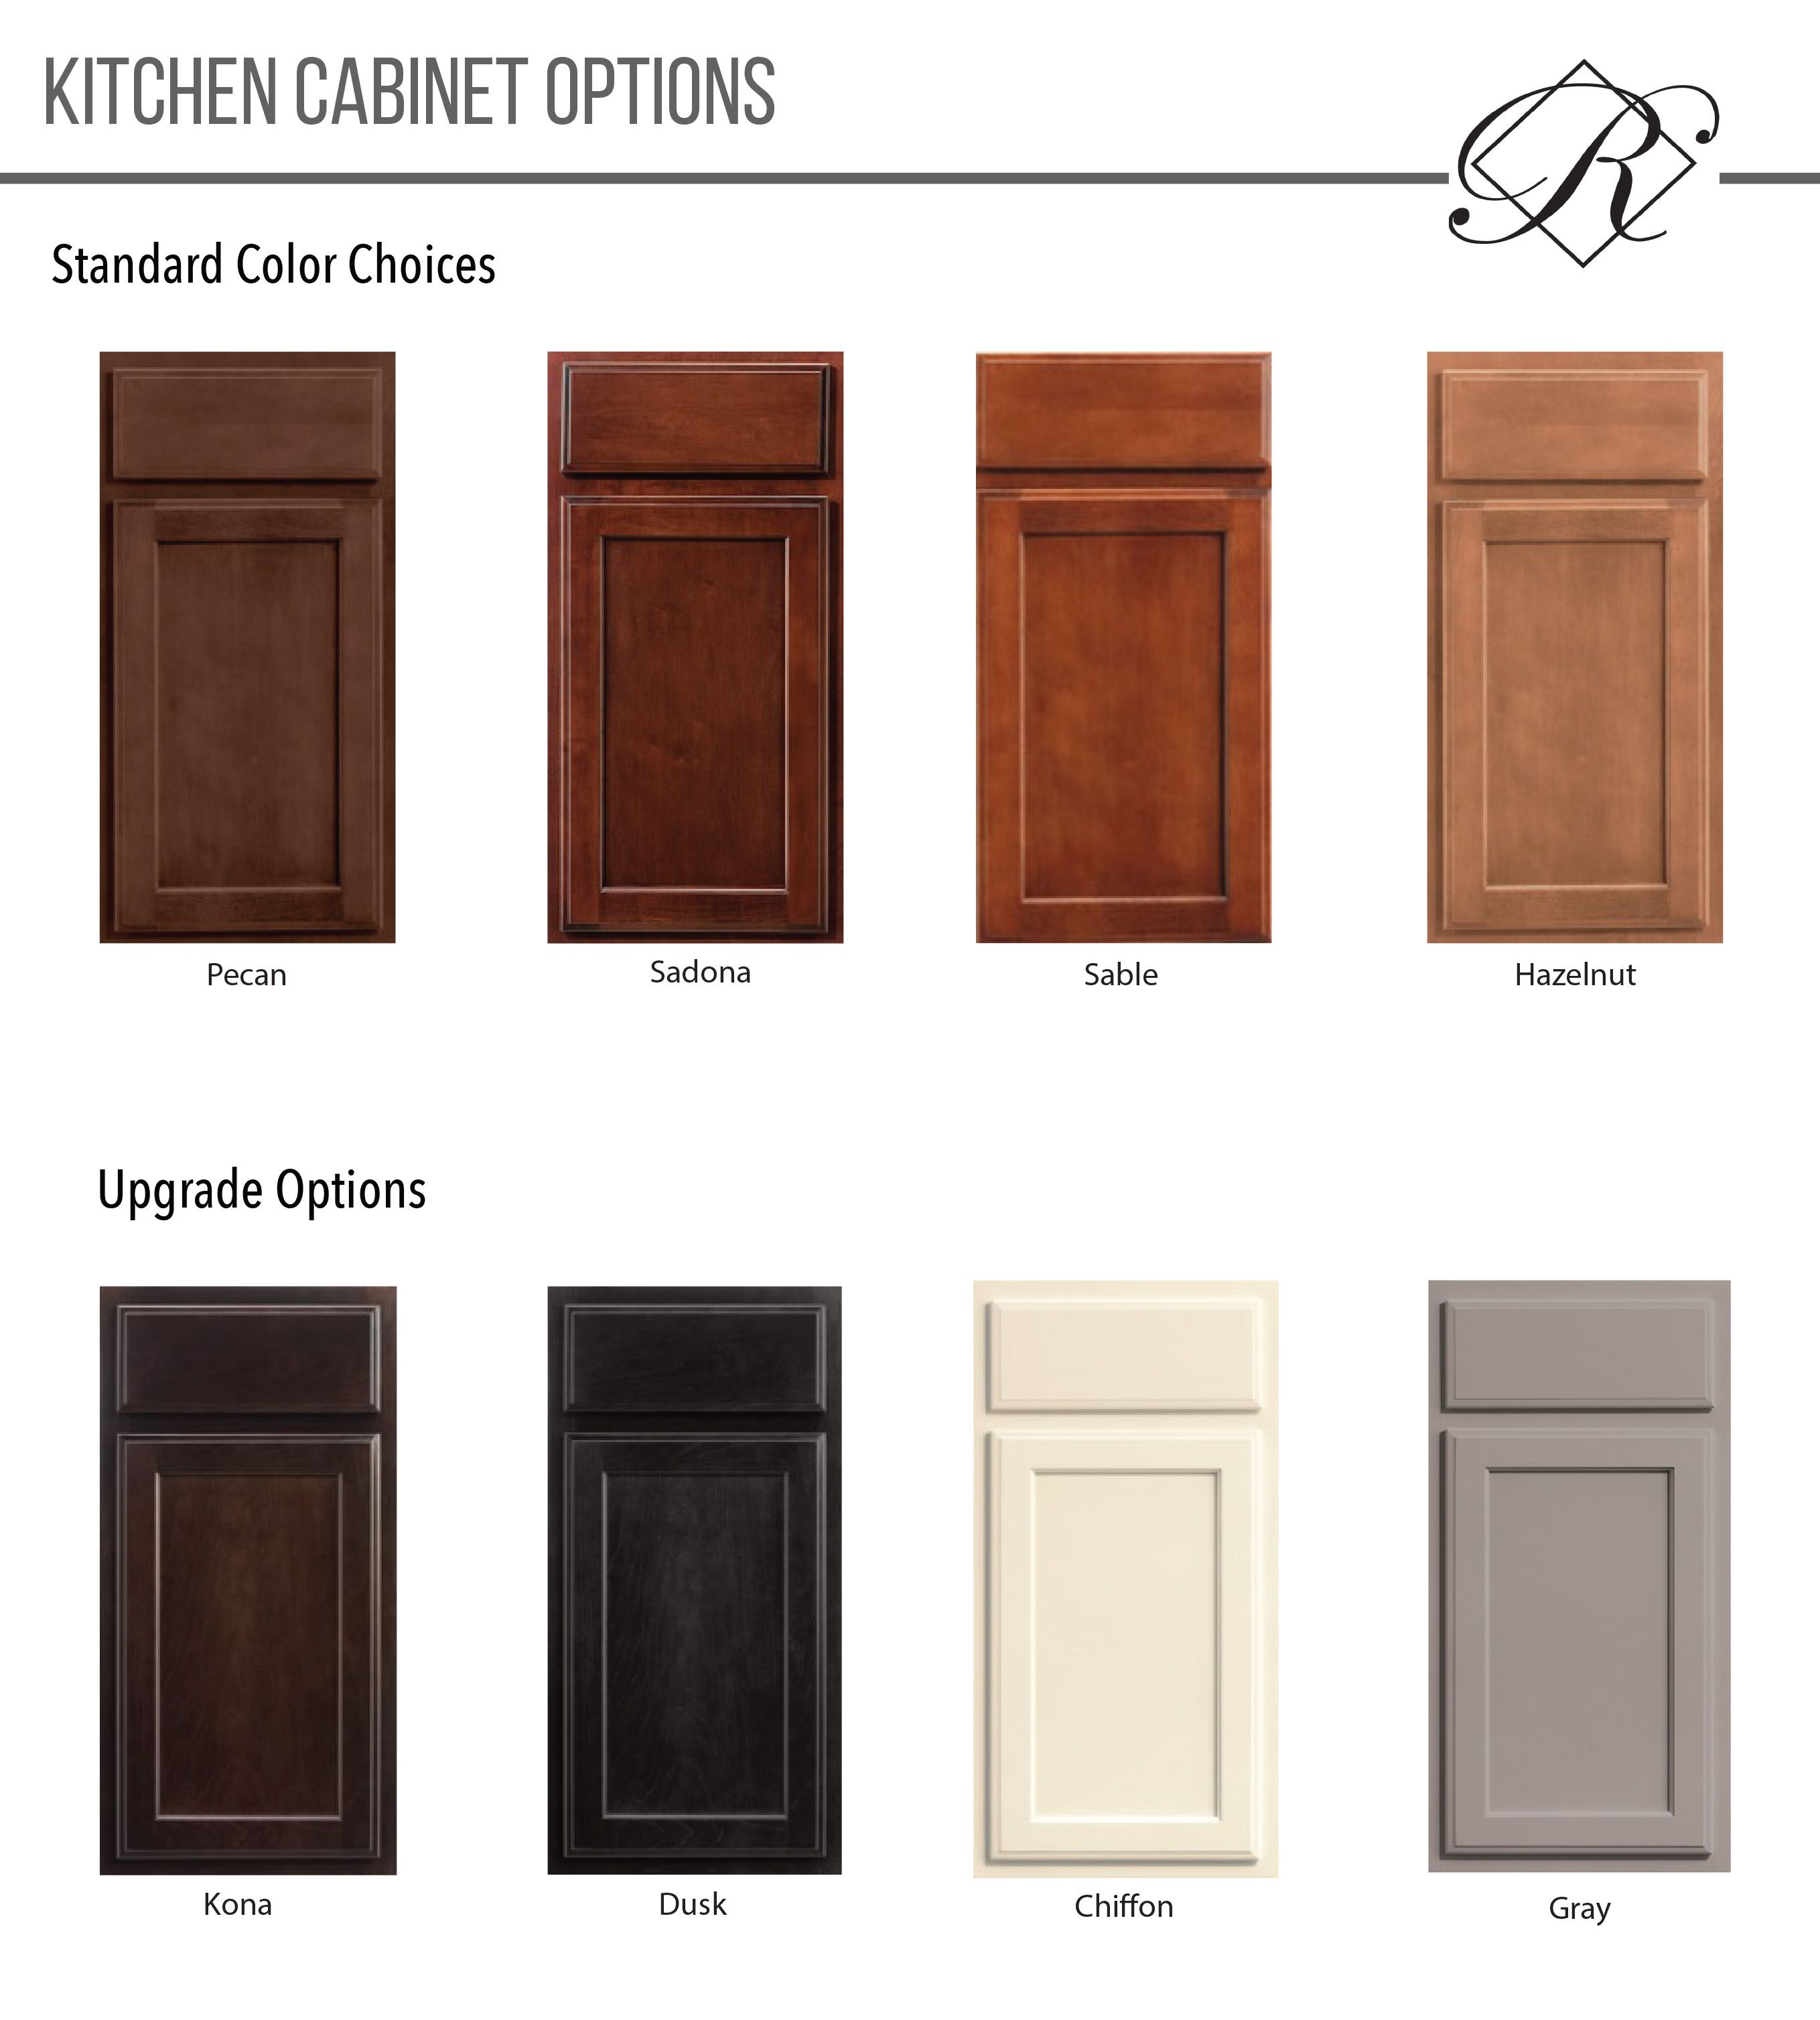 Merrilat Dusk Color Cabinets: Regency Homebuilders Cabinet Color Options, Merrilat